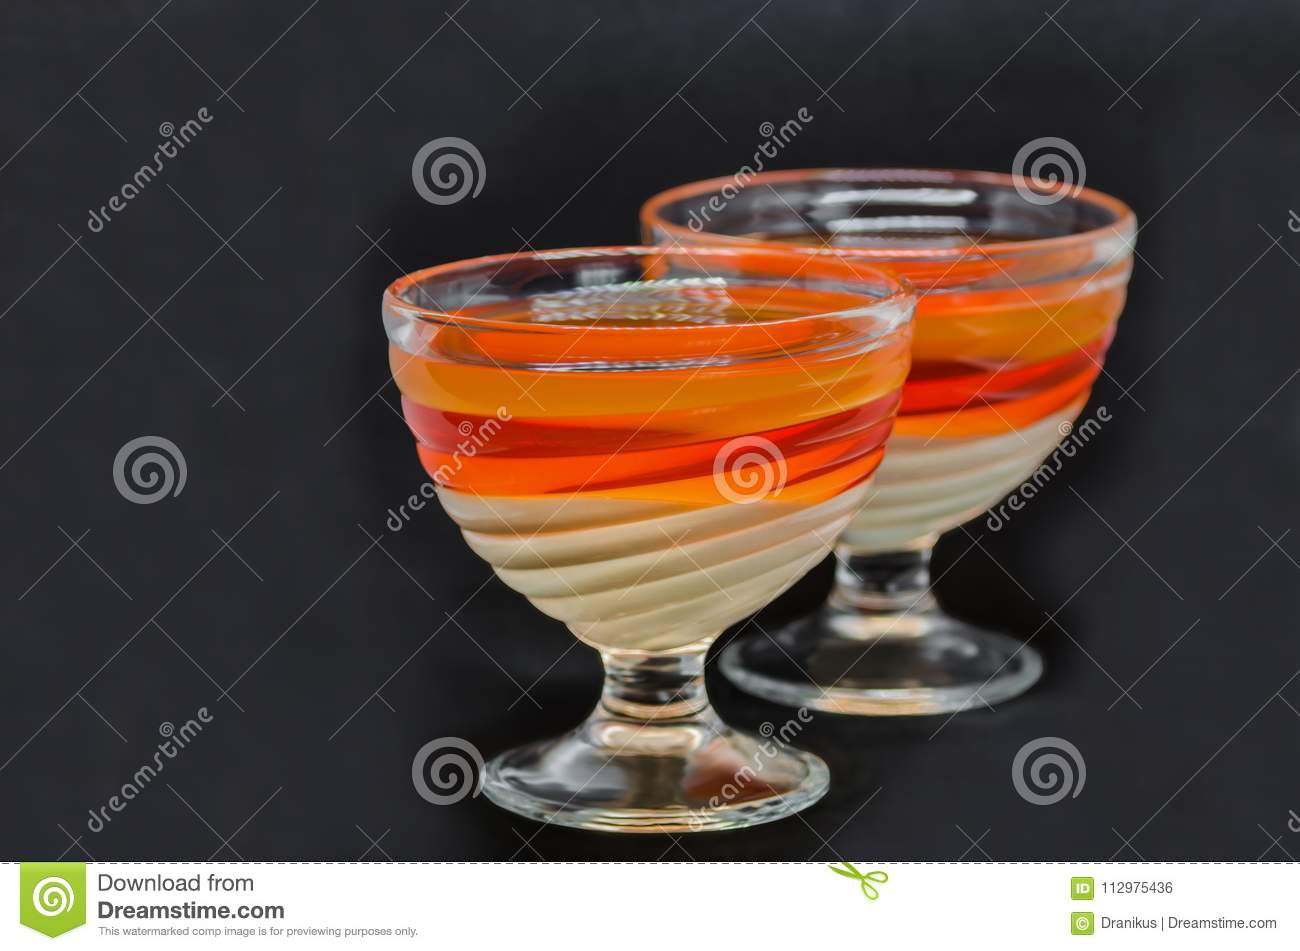 Sweet delicious dessert of multi-colored jelly in a glassware